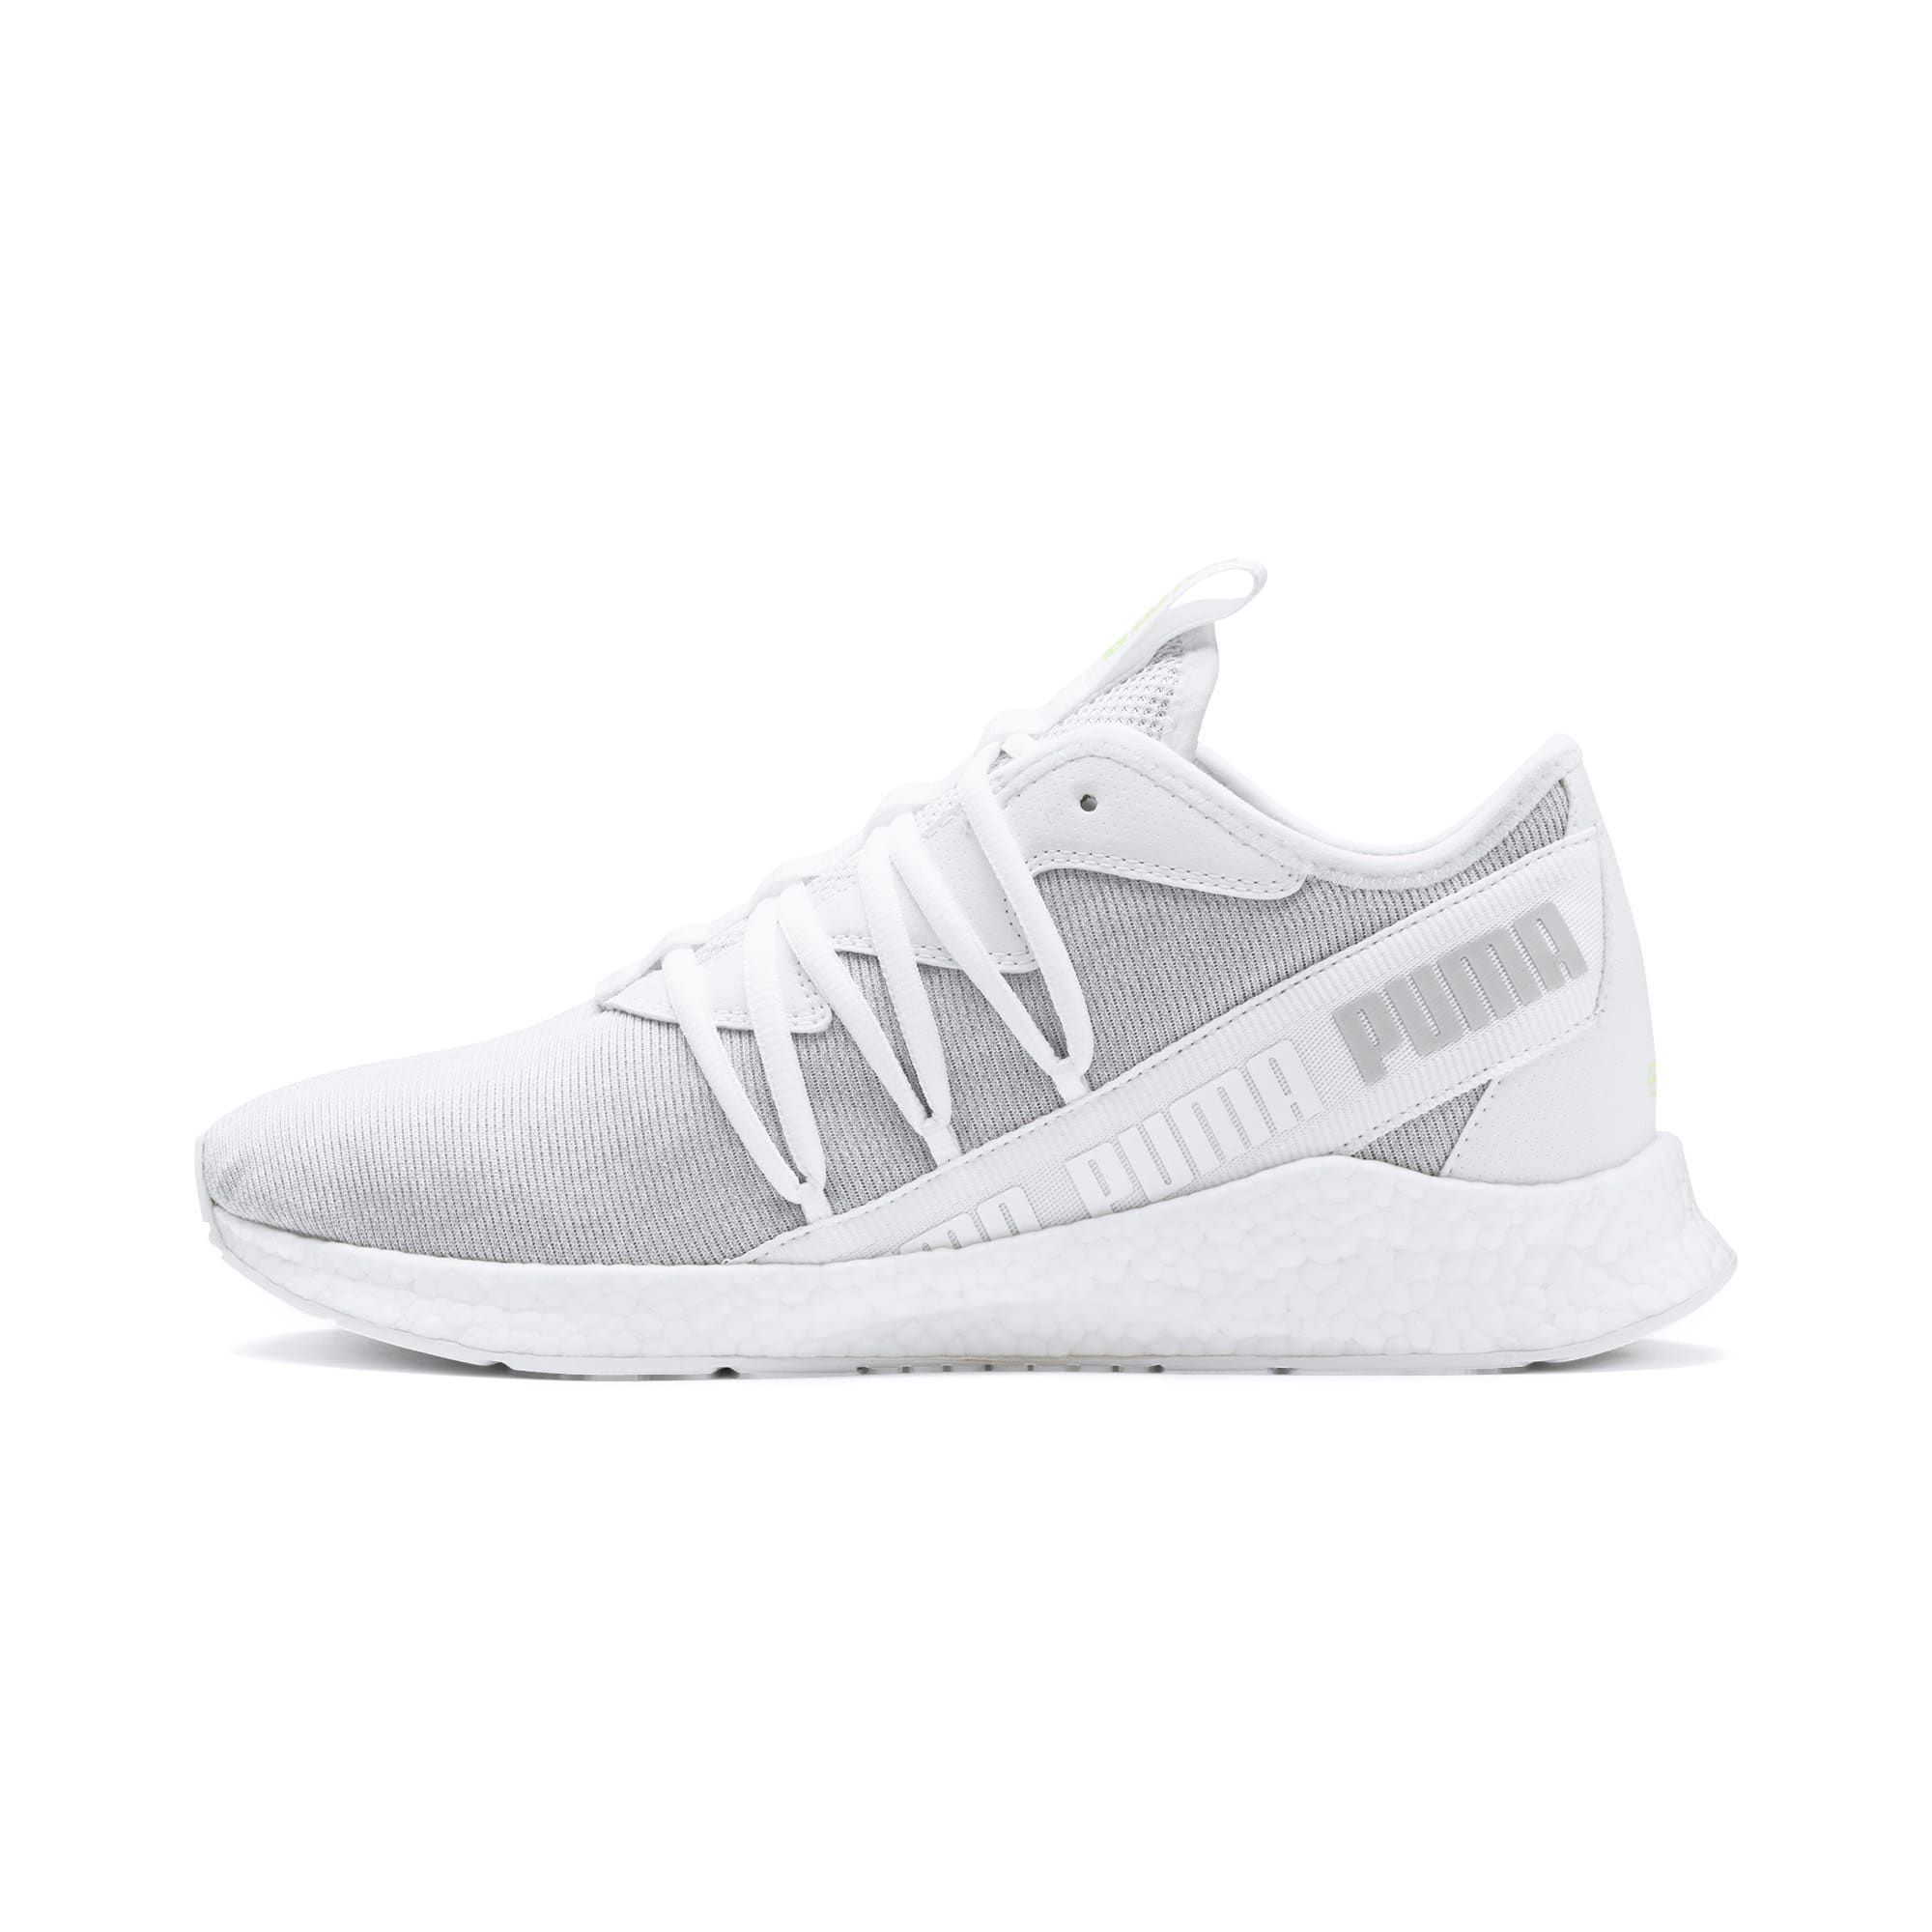 PUMA NRGY Star Knit Trainers in White